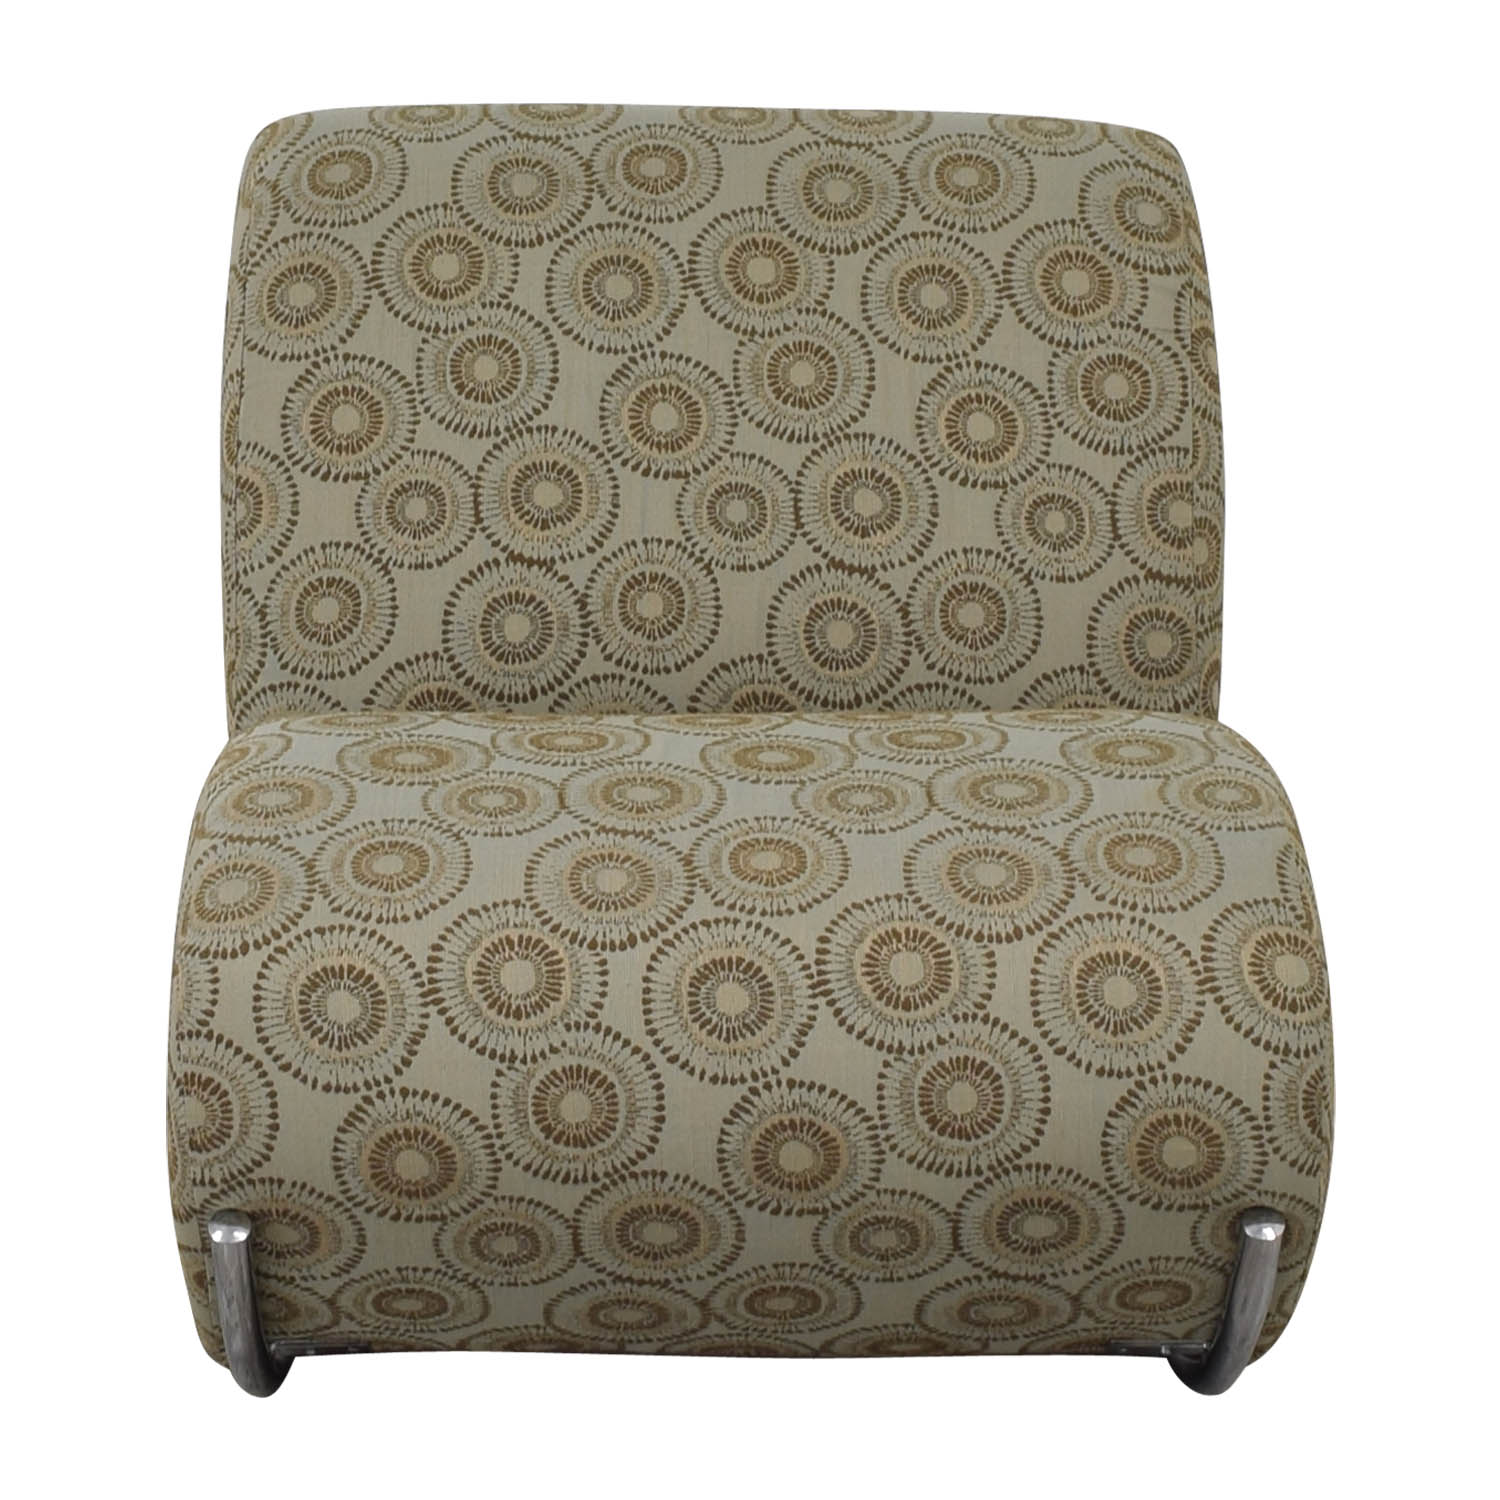 Rocking Accent Chairs 84 Off Eq3 Eq3 Upholstered James Rocker Accent Chair Chairs